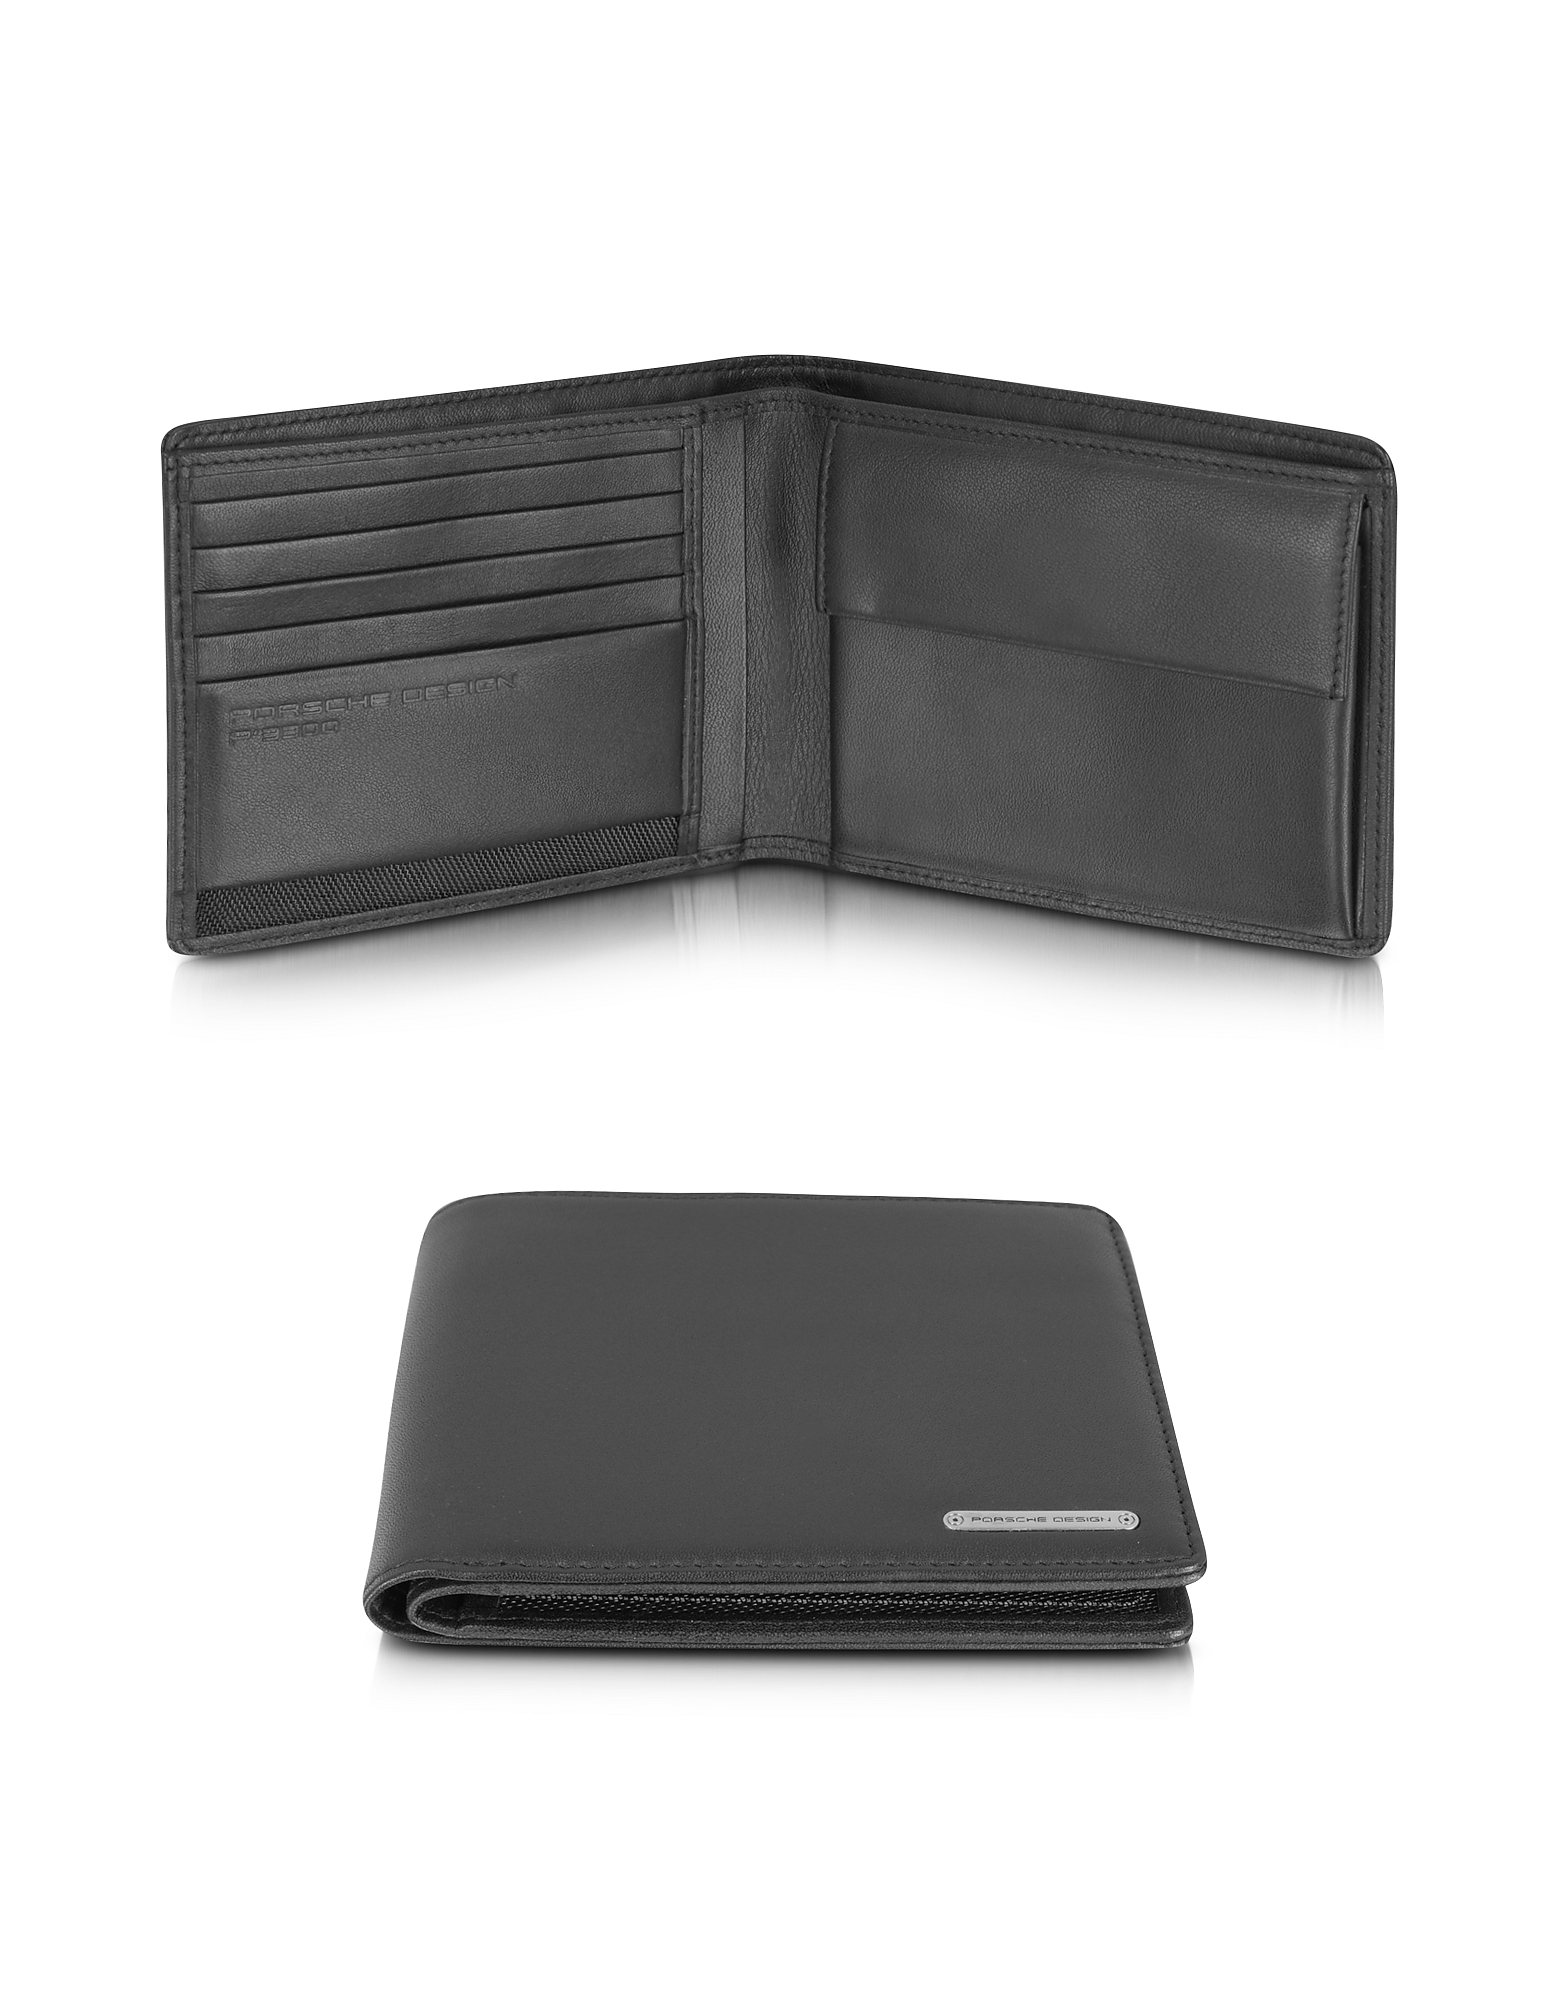 CL 2.0 – Black Leather Billfold